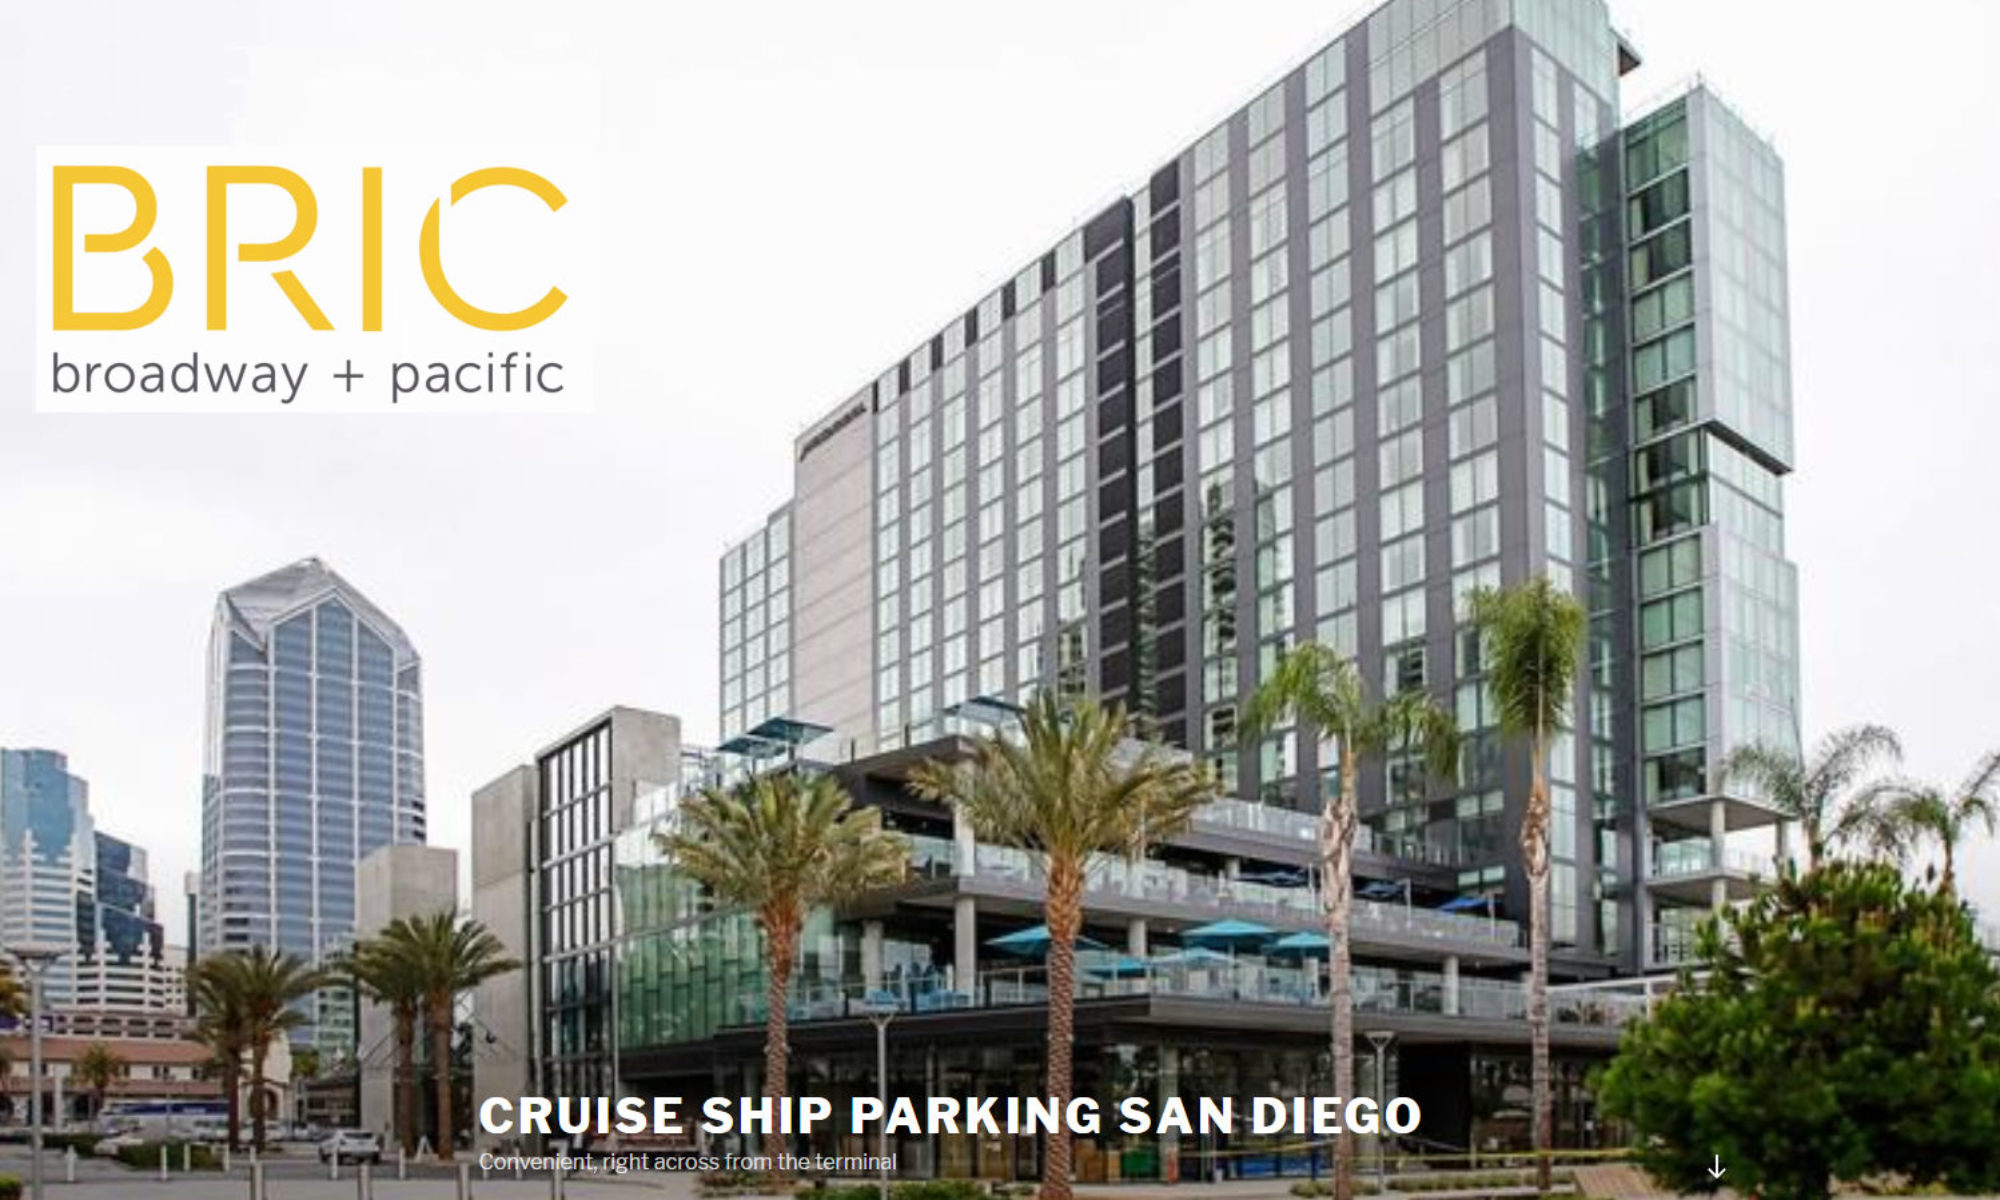 Cruise Ship Parking San Diego